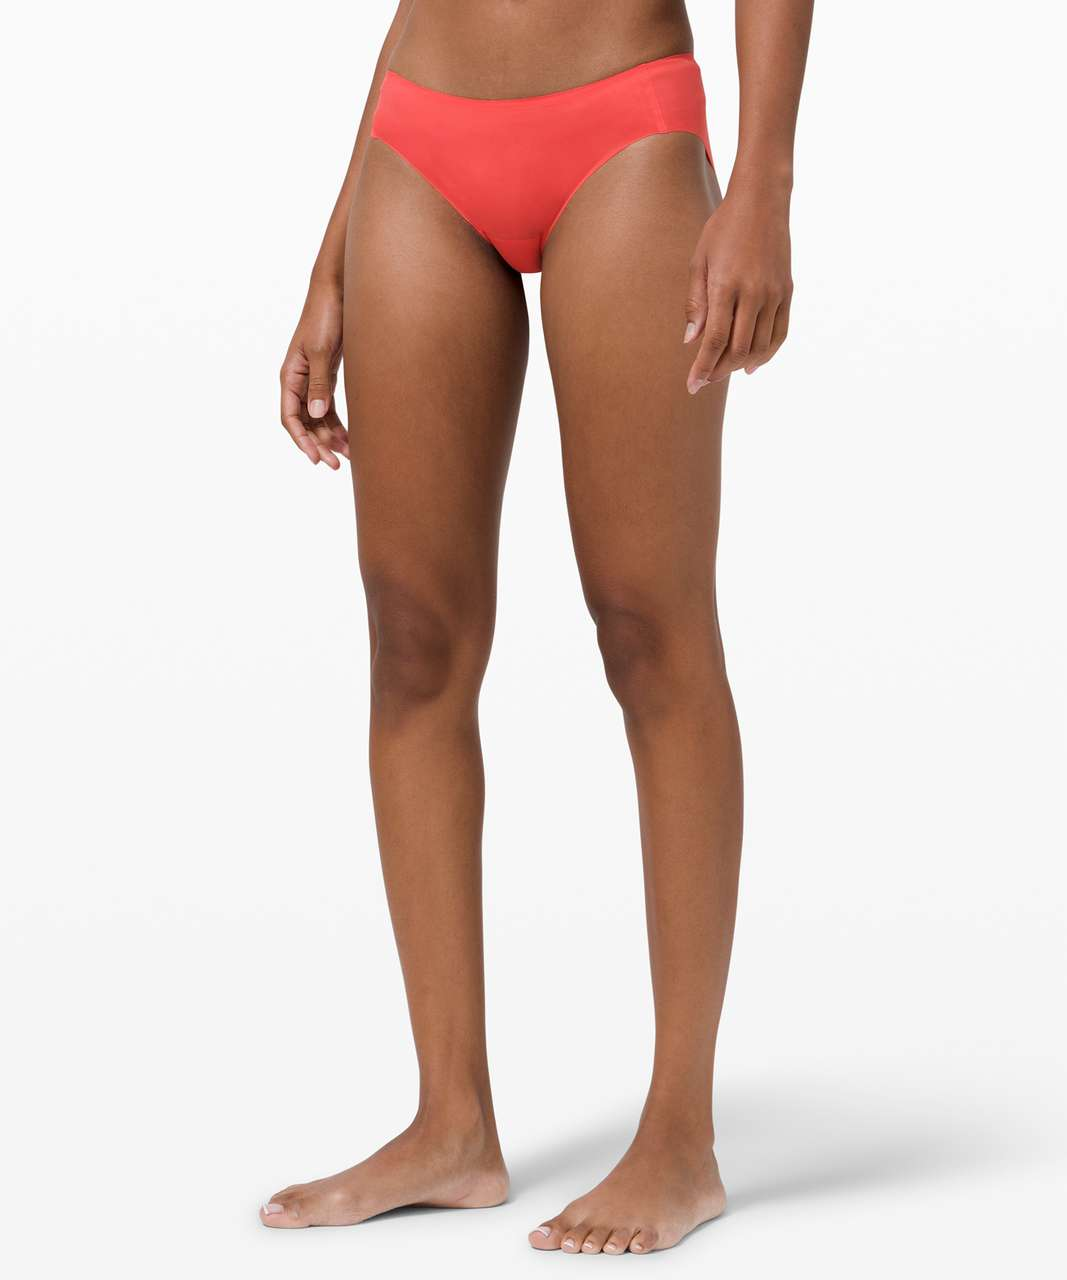 Lululemon Smooth Seamless Hipster 3 Pack - Black / Watermelon Red / Misty Shell